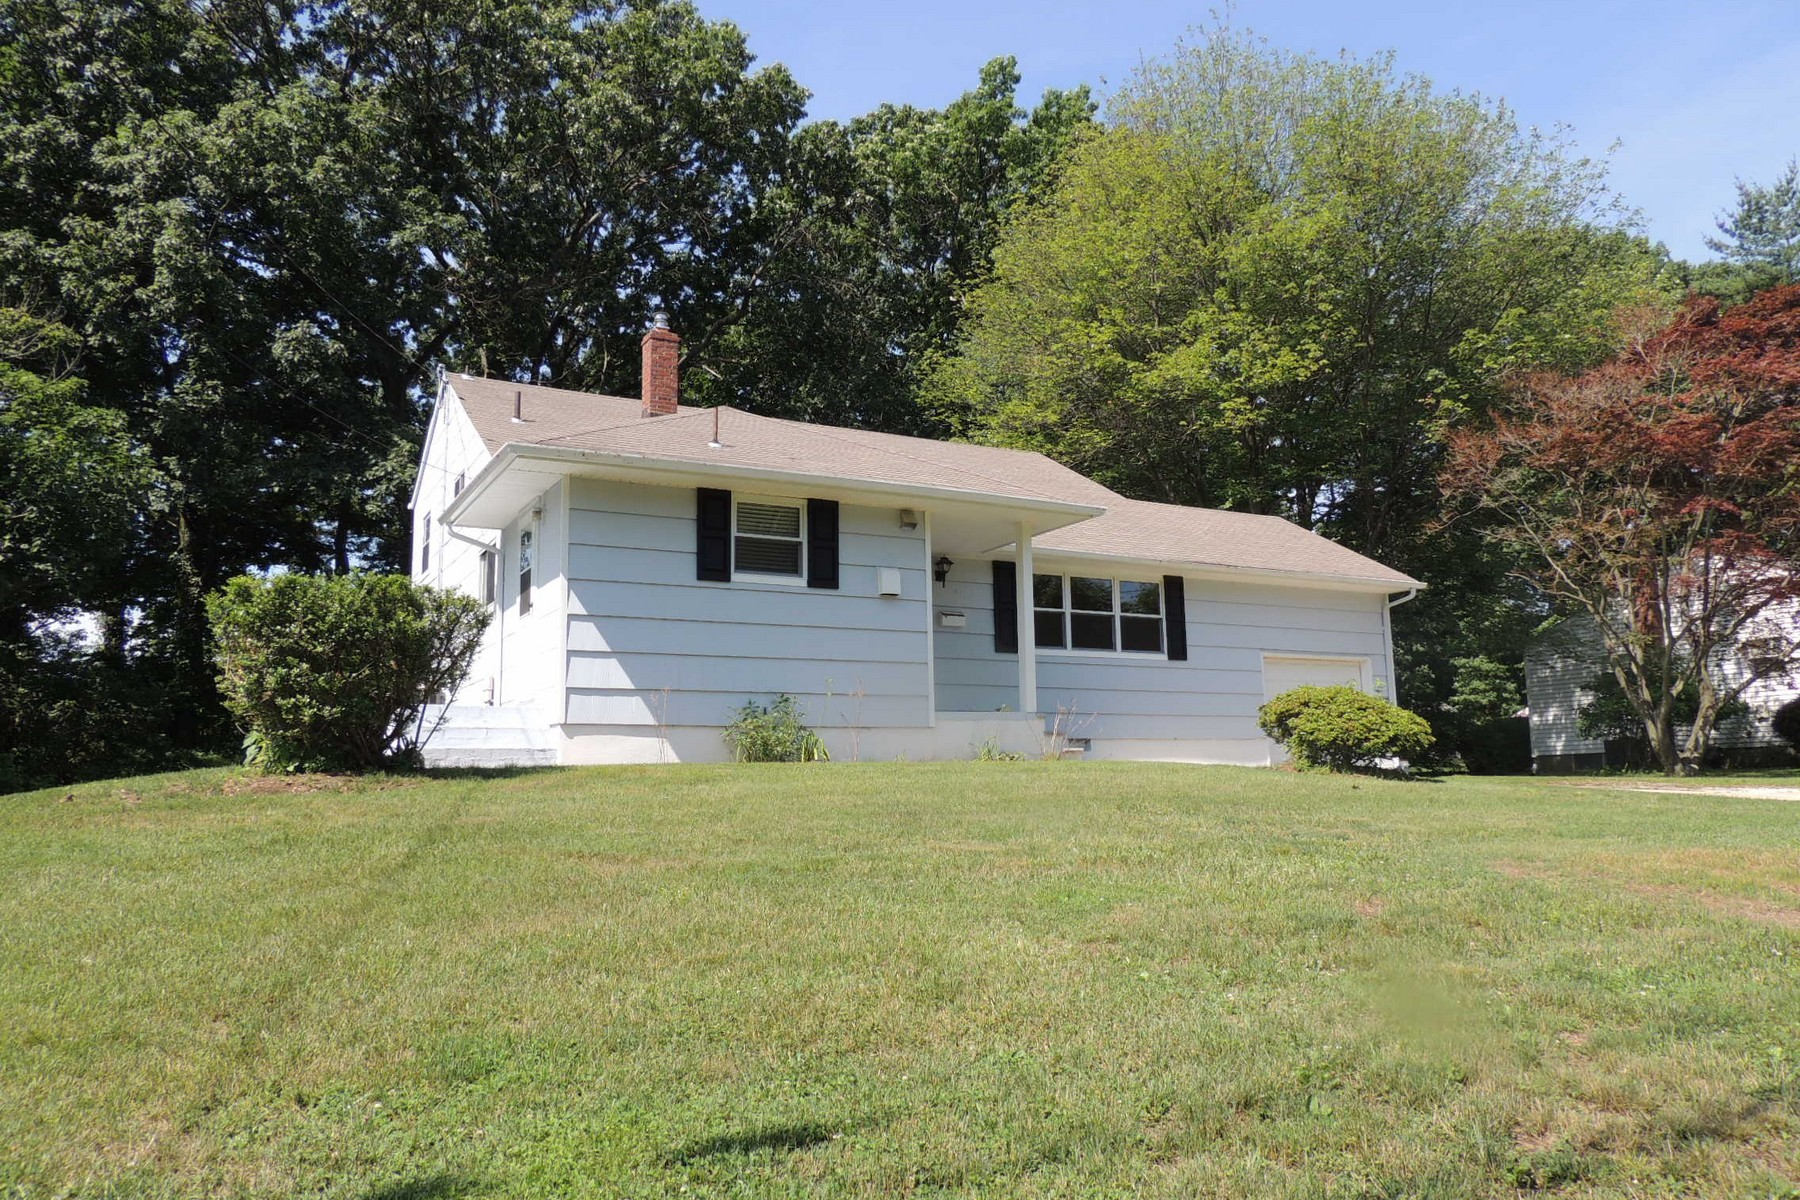 Single Family Home for Sale at 27 Chestnut Ridge Road Holmdel, New Jersey 07733 United States